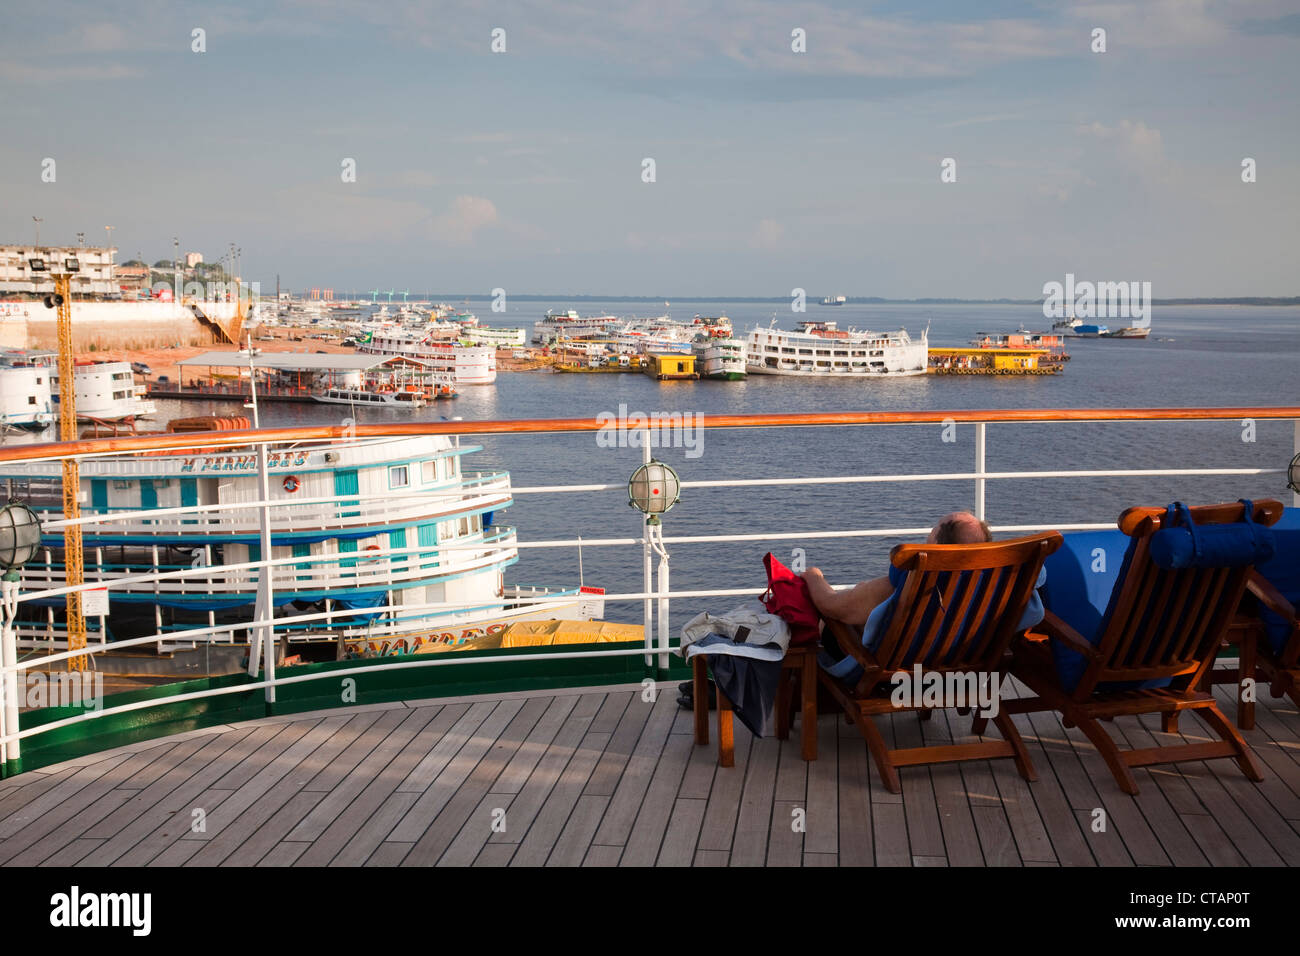 Guest on deck of cruise ship MS Deutschland, Reederei Peter Deilmann, with view of Amazon river boats, Manaus, Amazonas, - Stock Image